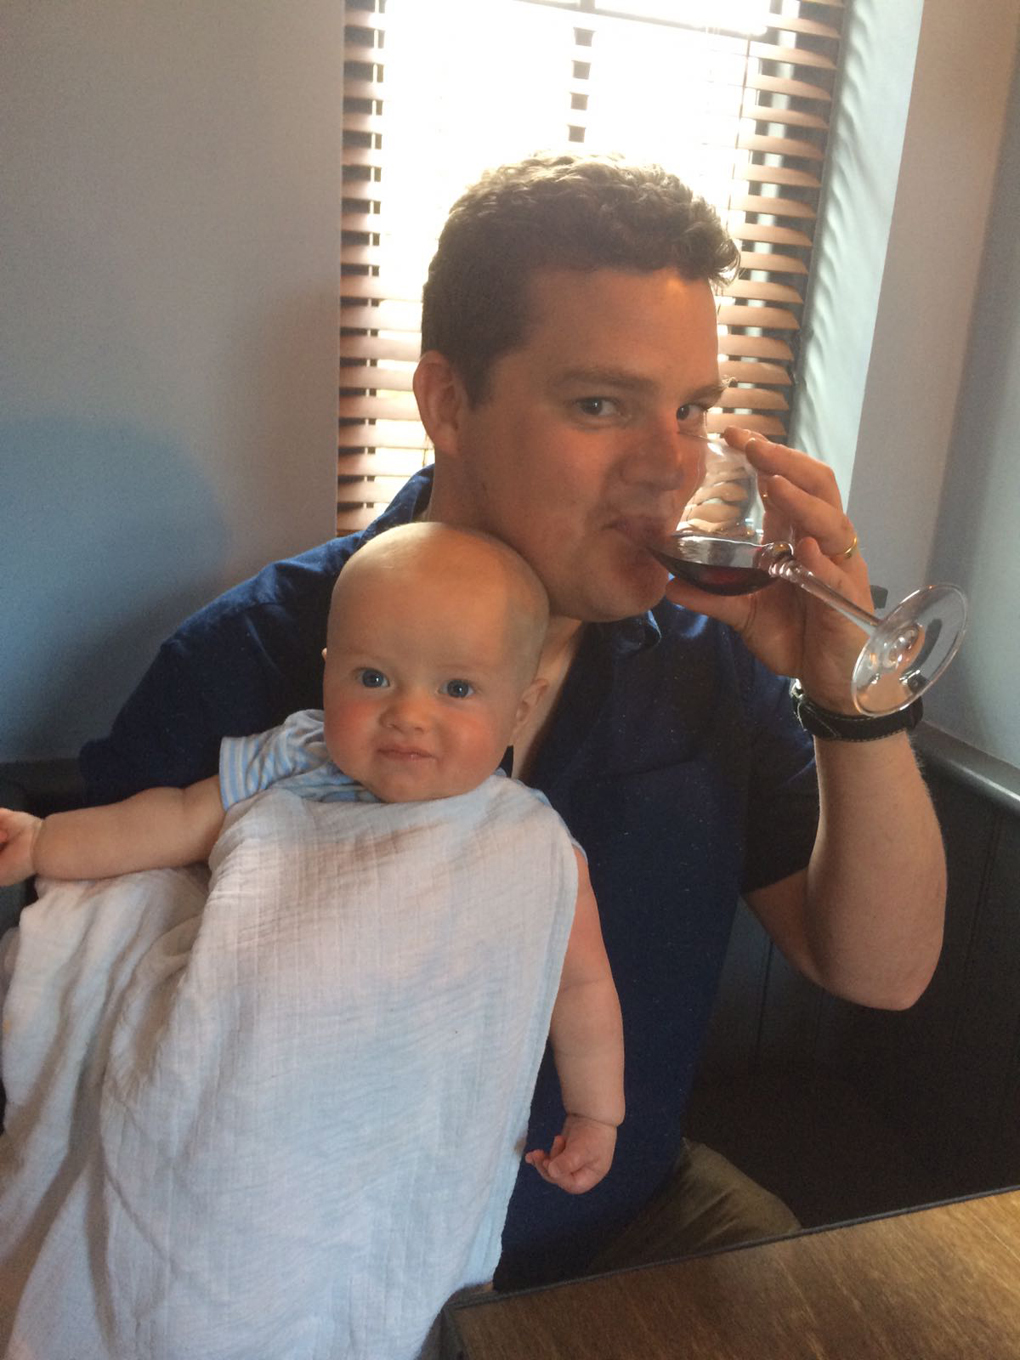 man drinking wine with baby